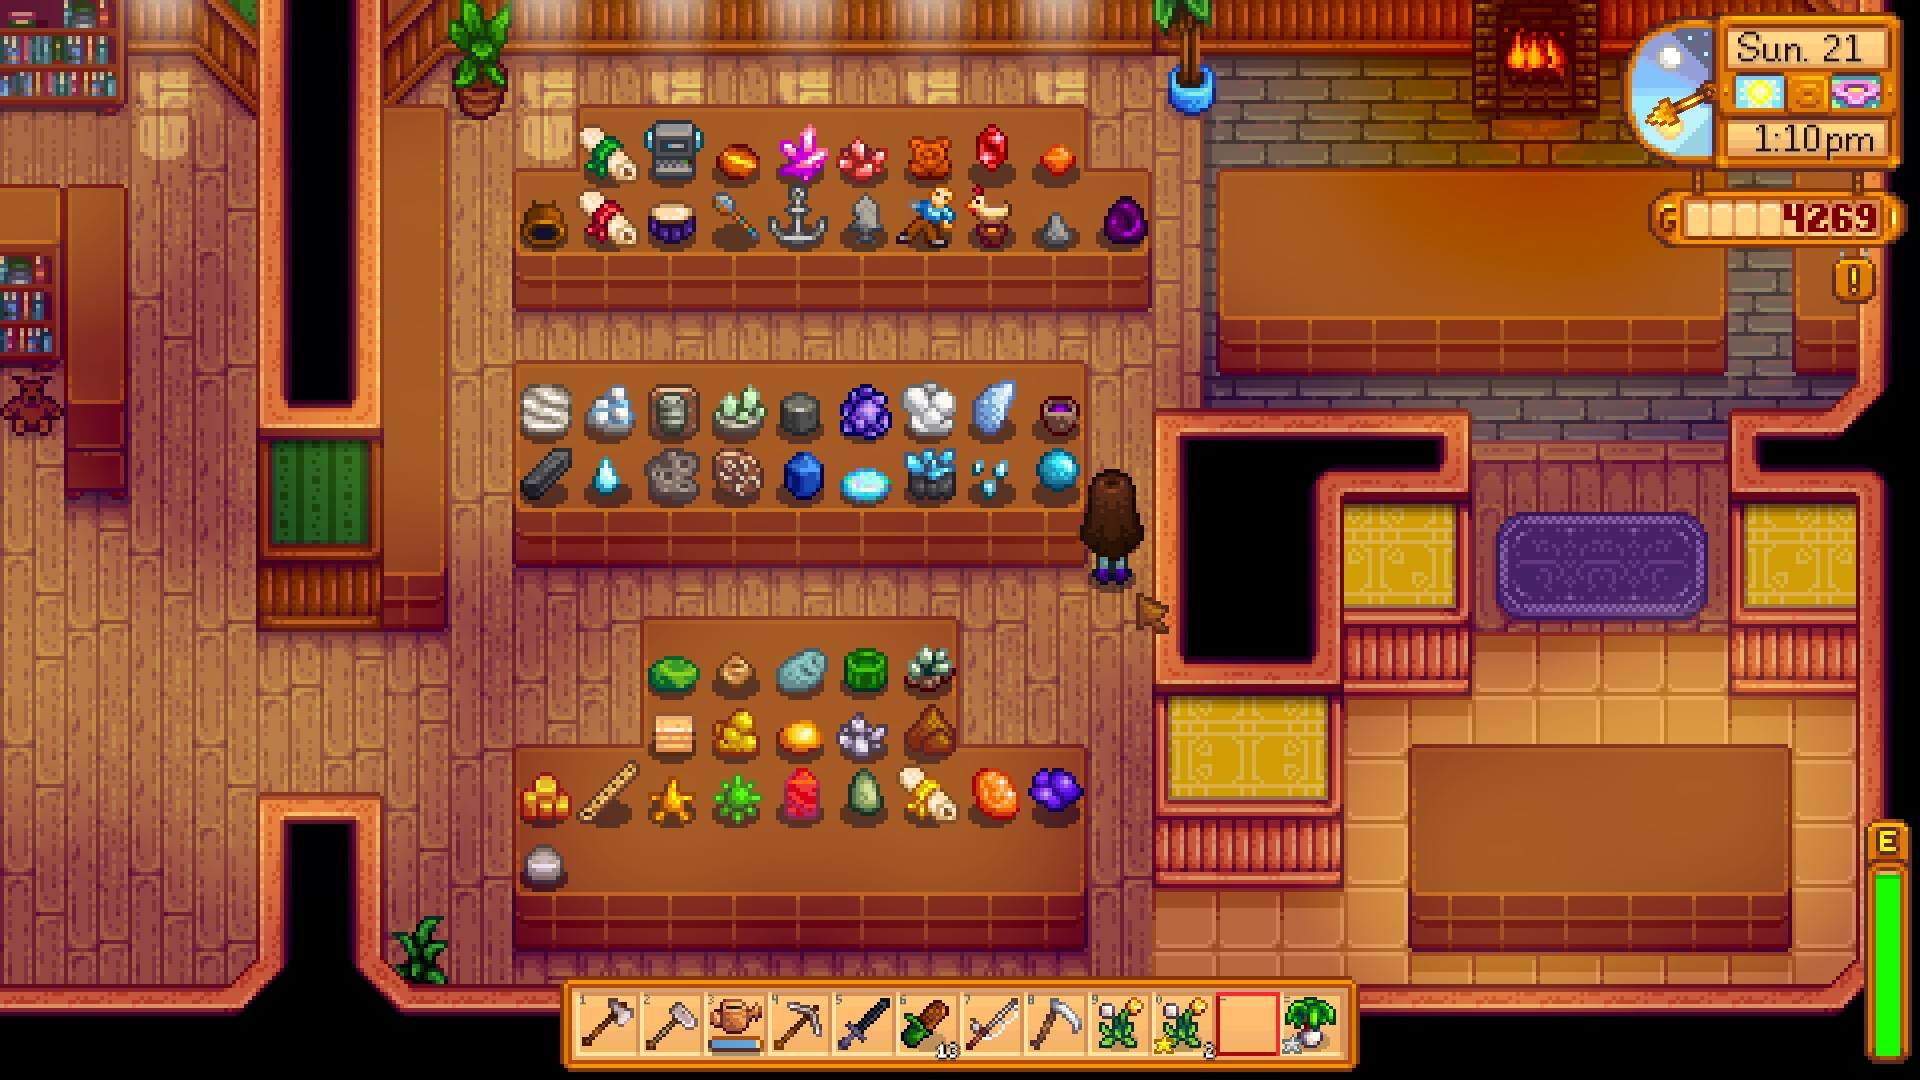 Donate Museum Stardew Valley